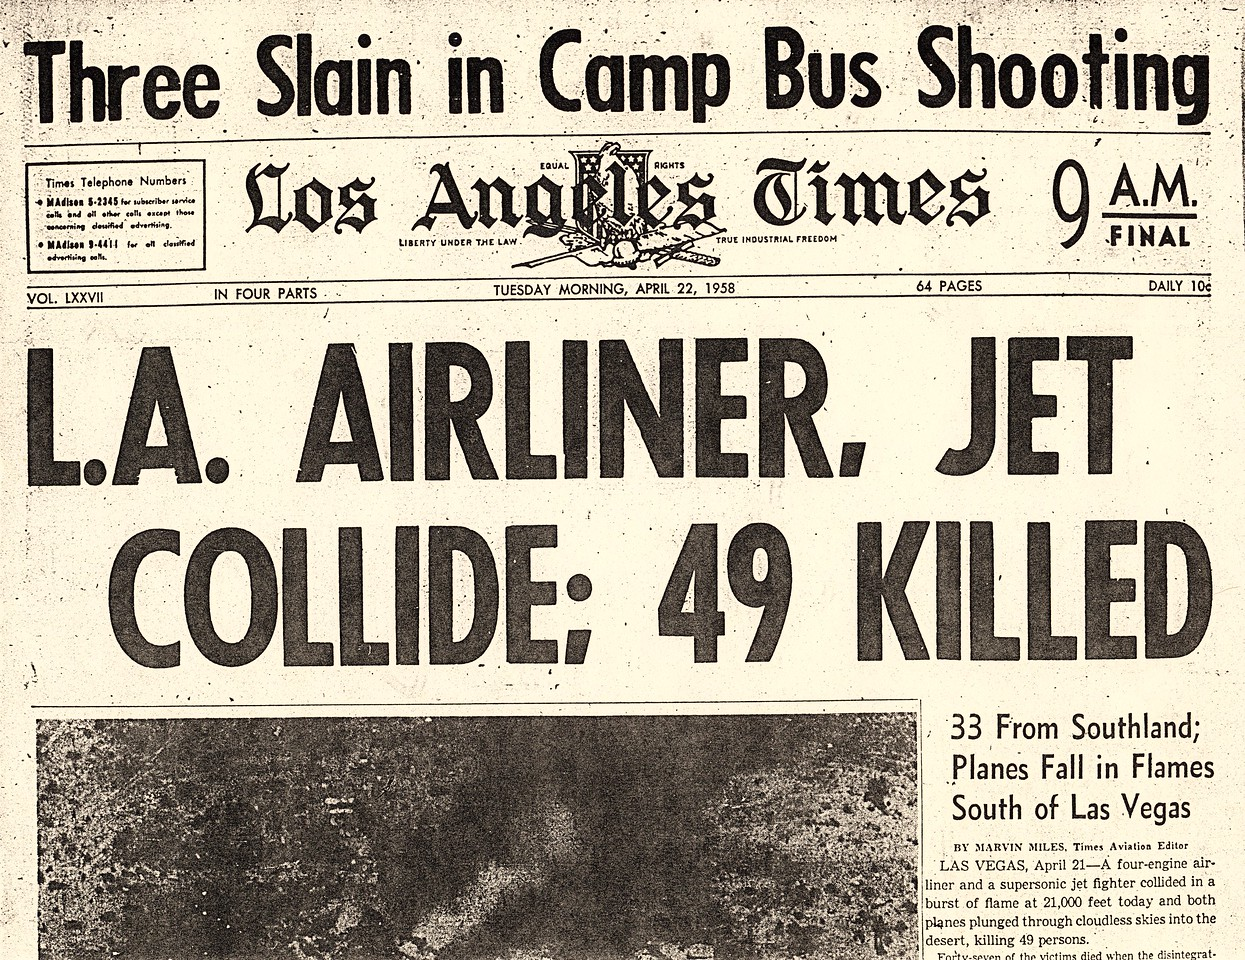 The accident made headlines from coast to coast and around the world.